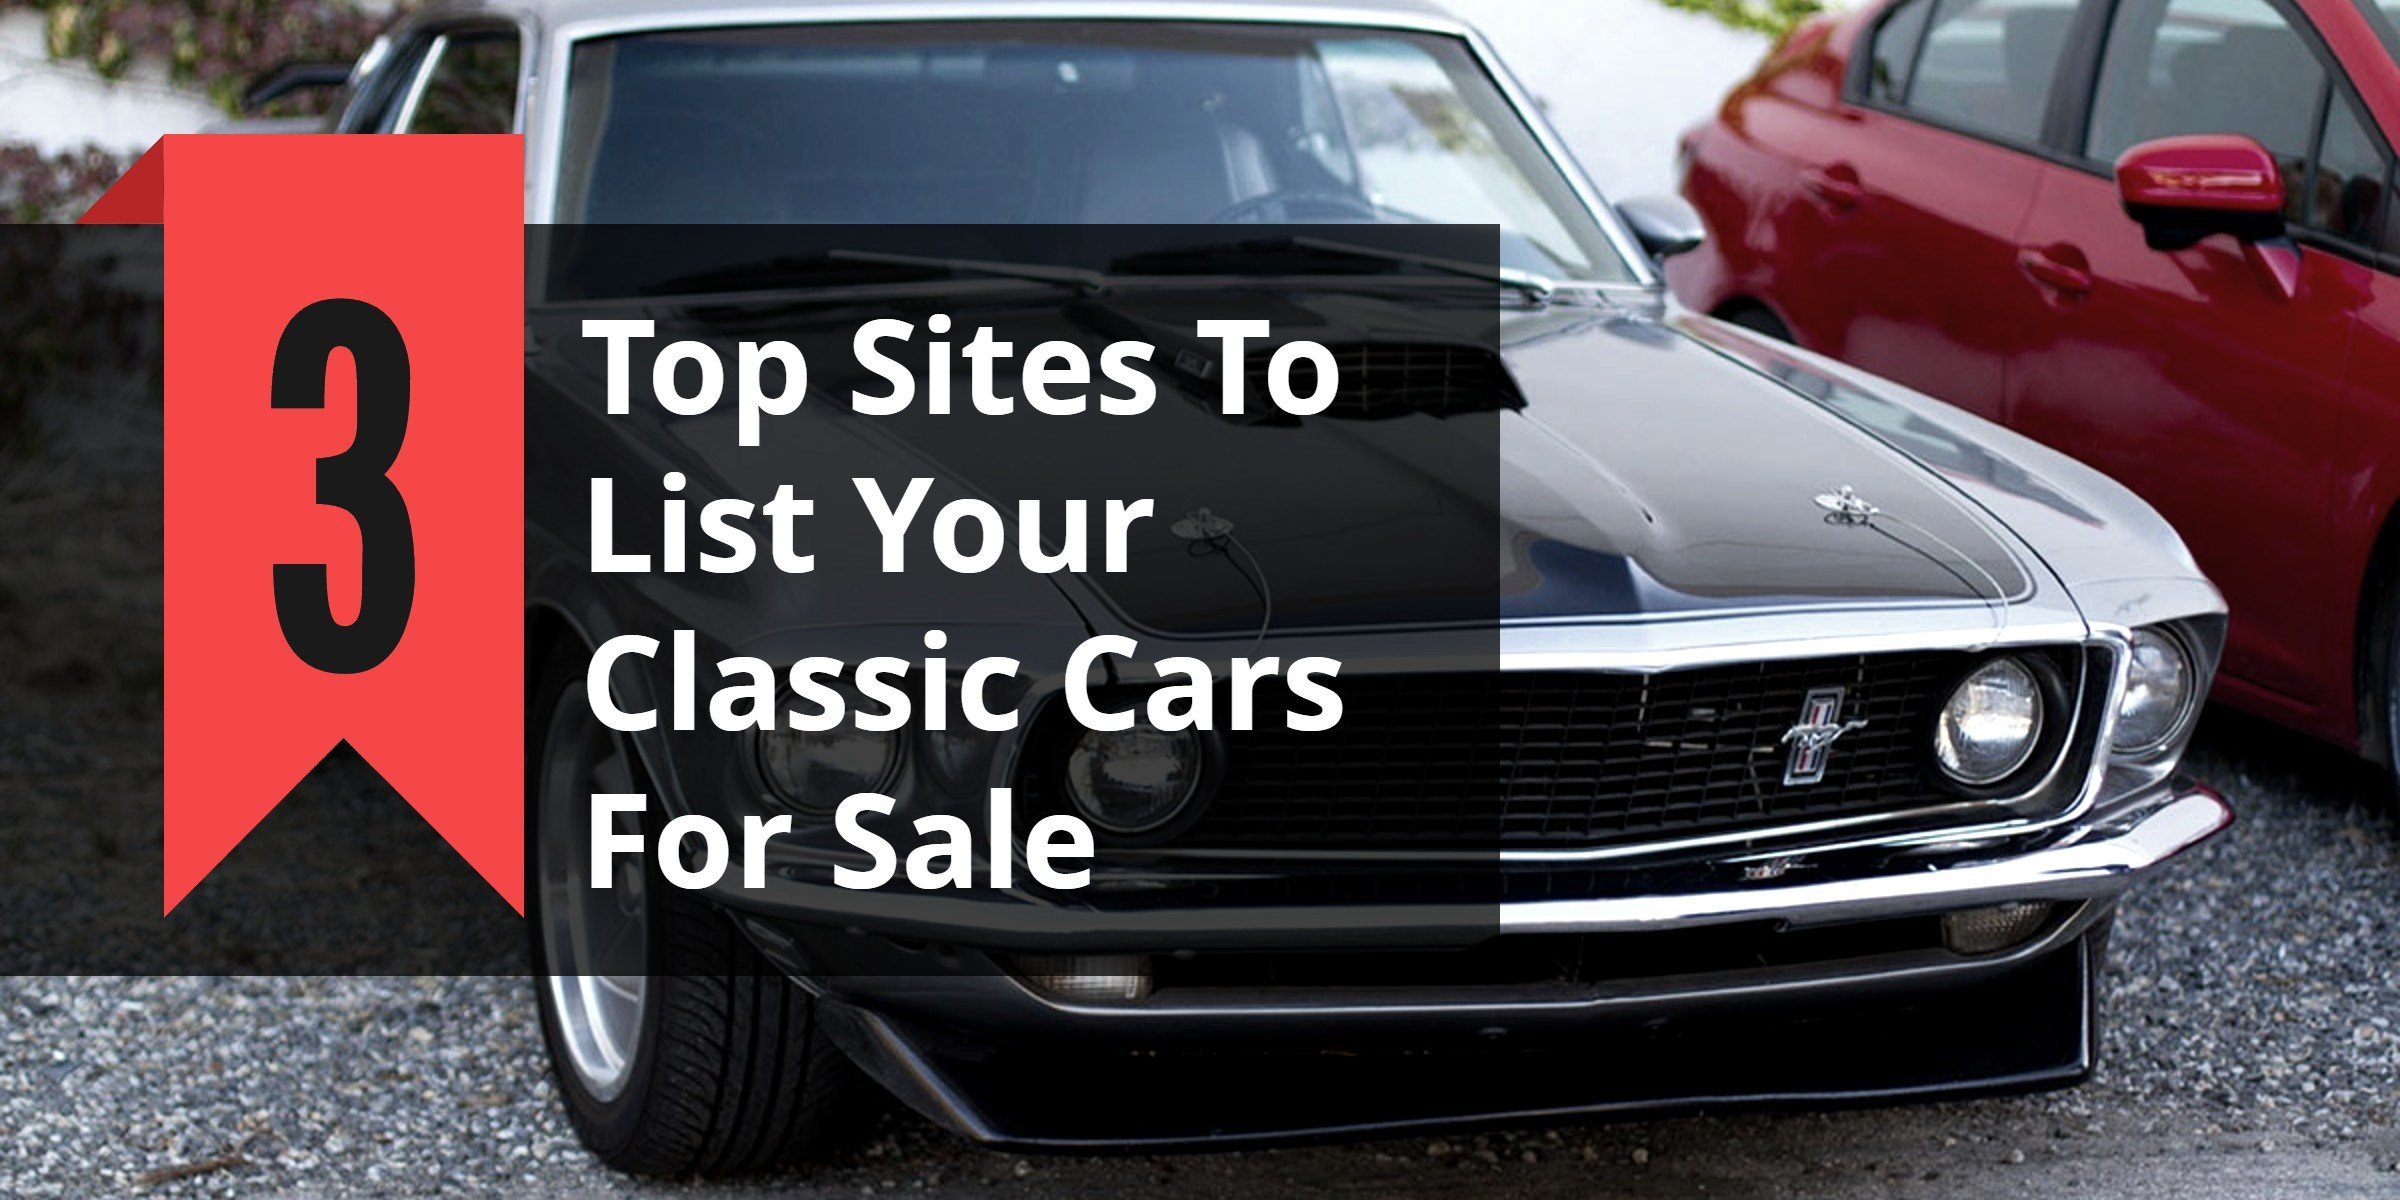 http://cdn2.hubspot.net/hubfs/347760/C_Blogs/Blog_Images/Top%20sites%20to%20list%20your%20classic%20cars%20for%20sale.jpg